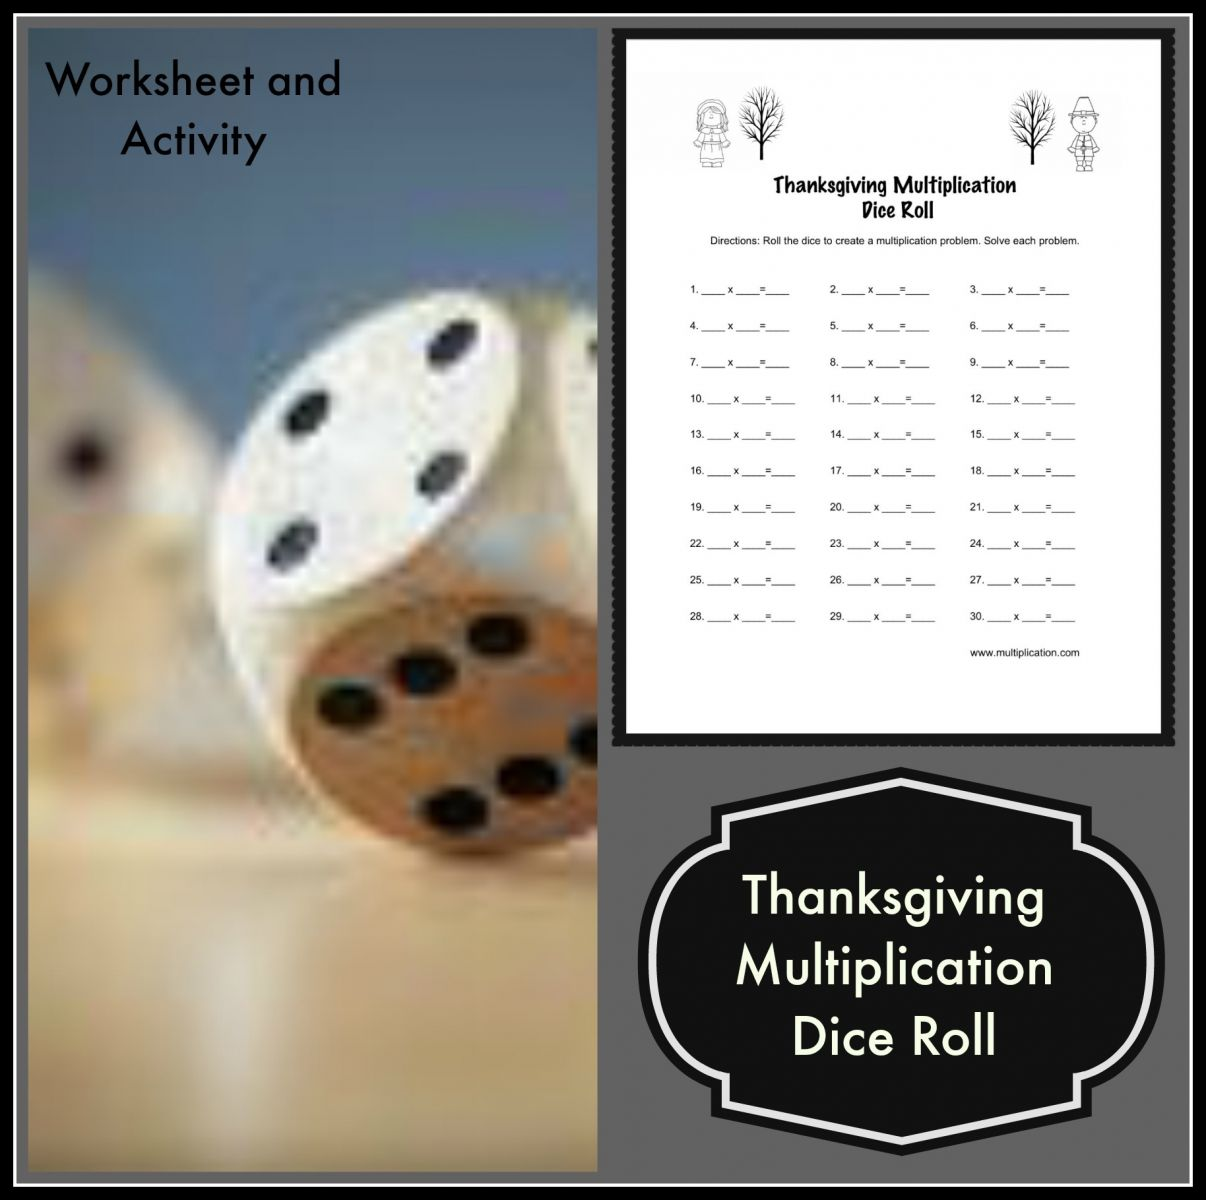 Thanksgiving Multiplication Dice Roll Worksheet